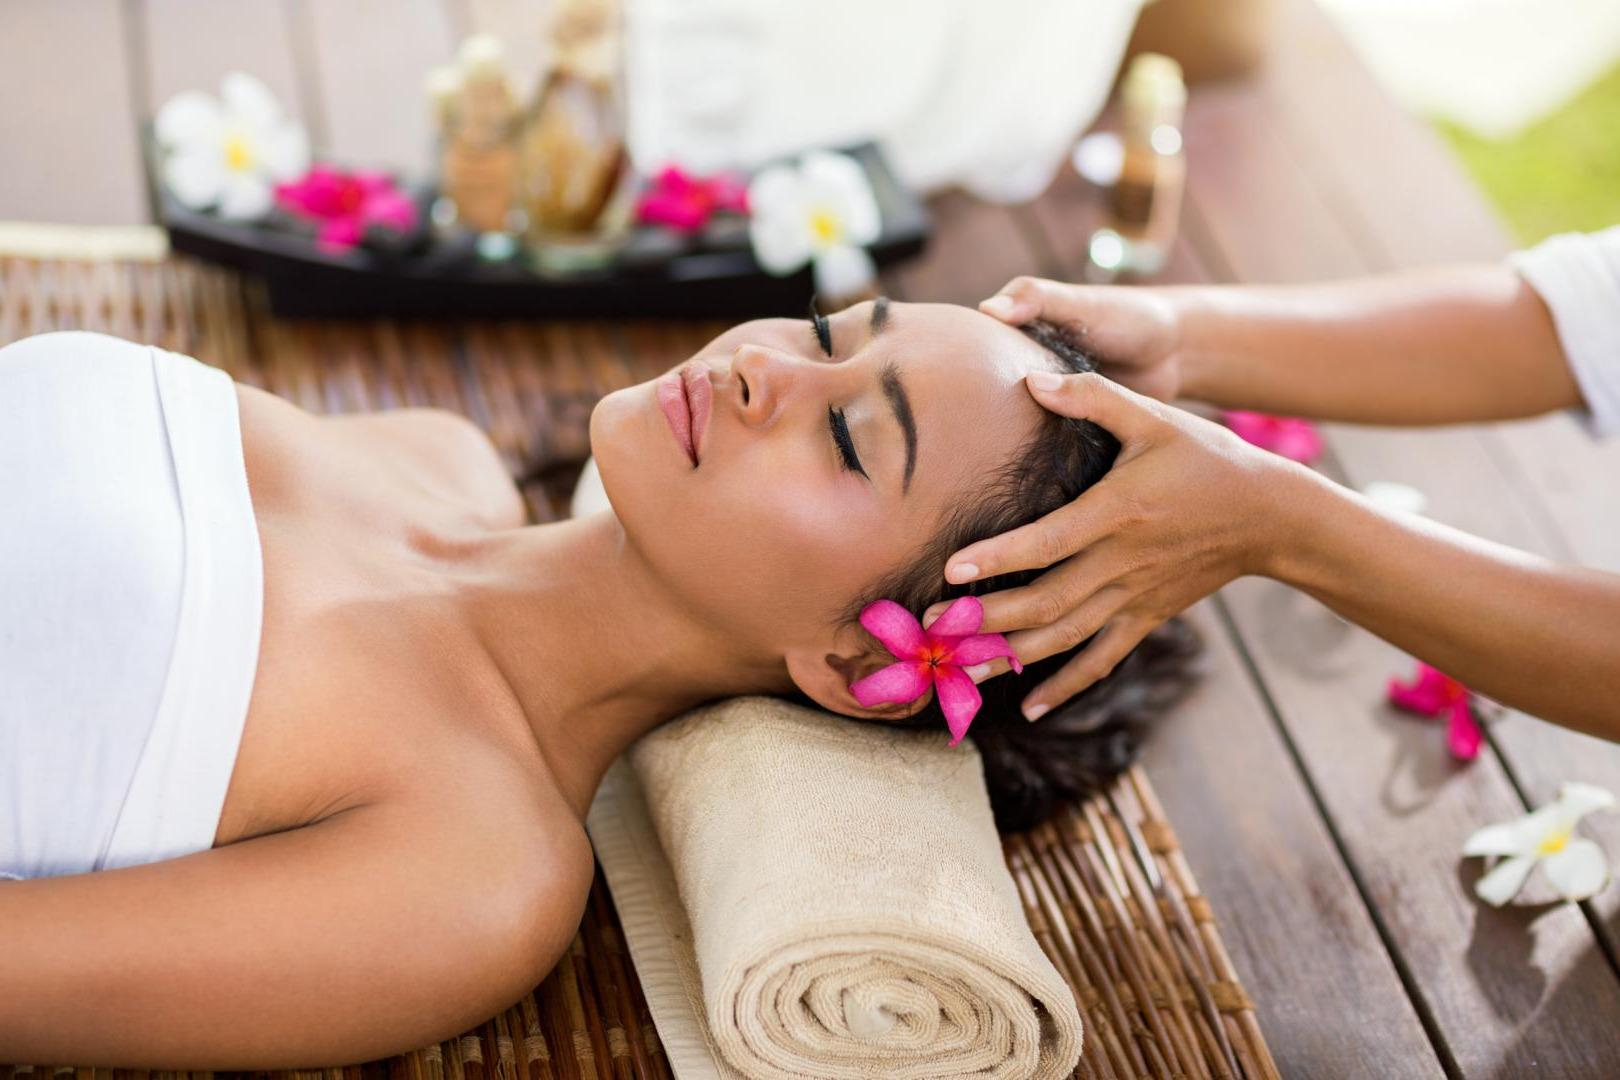 Top 10 Things to do in Thailand: Have a Thai Massage